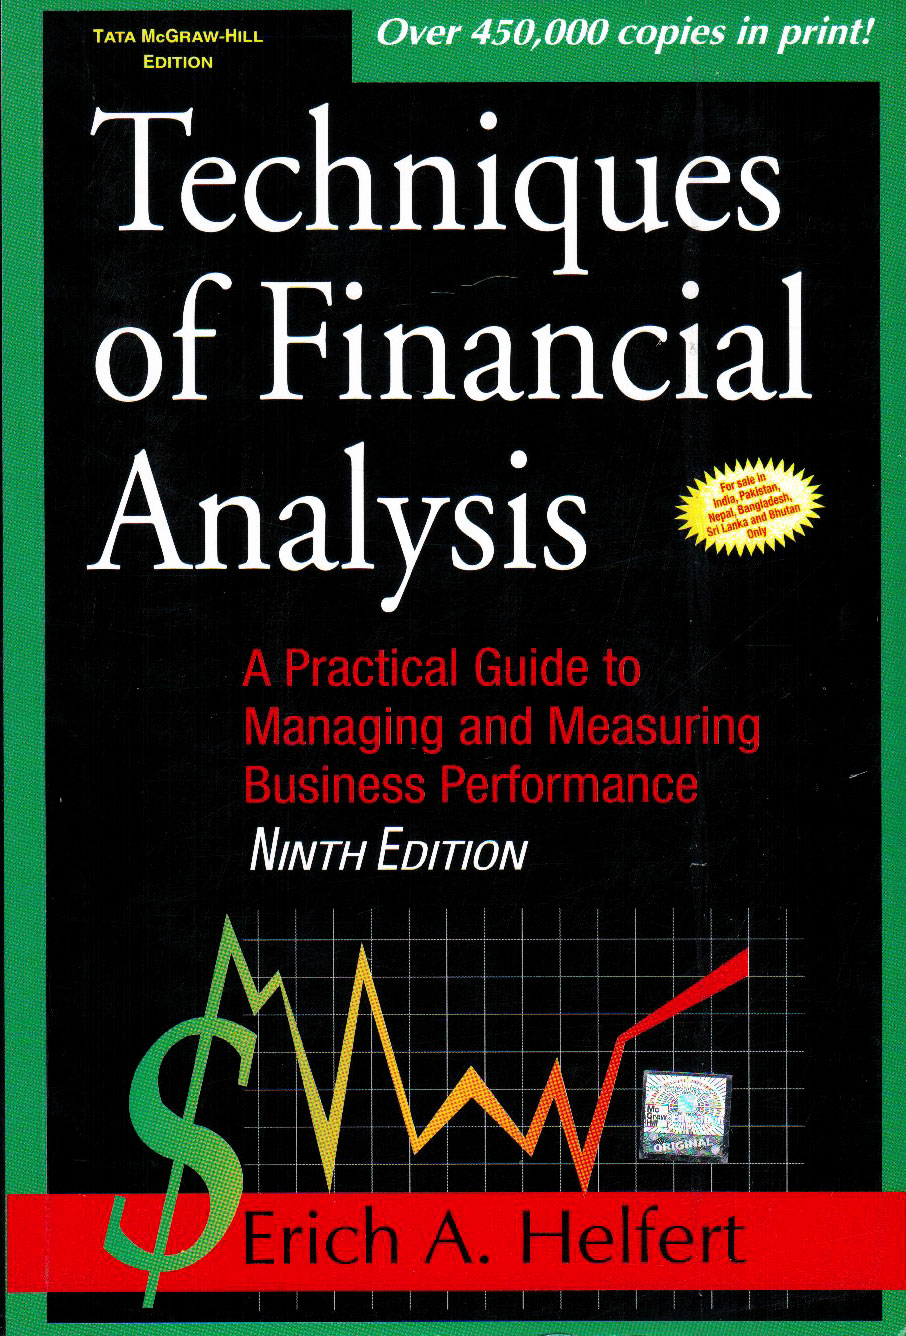 Techniques of Financial Analysis: A Practical Guide to Measuring Business Performance Erich A. Helfert